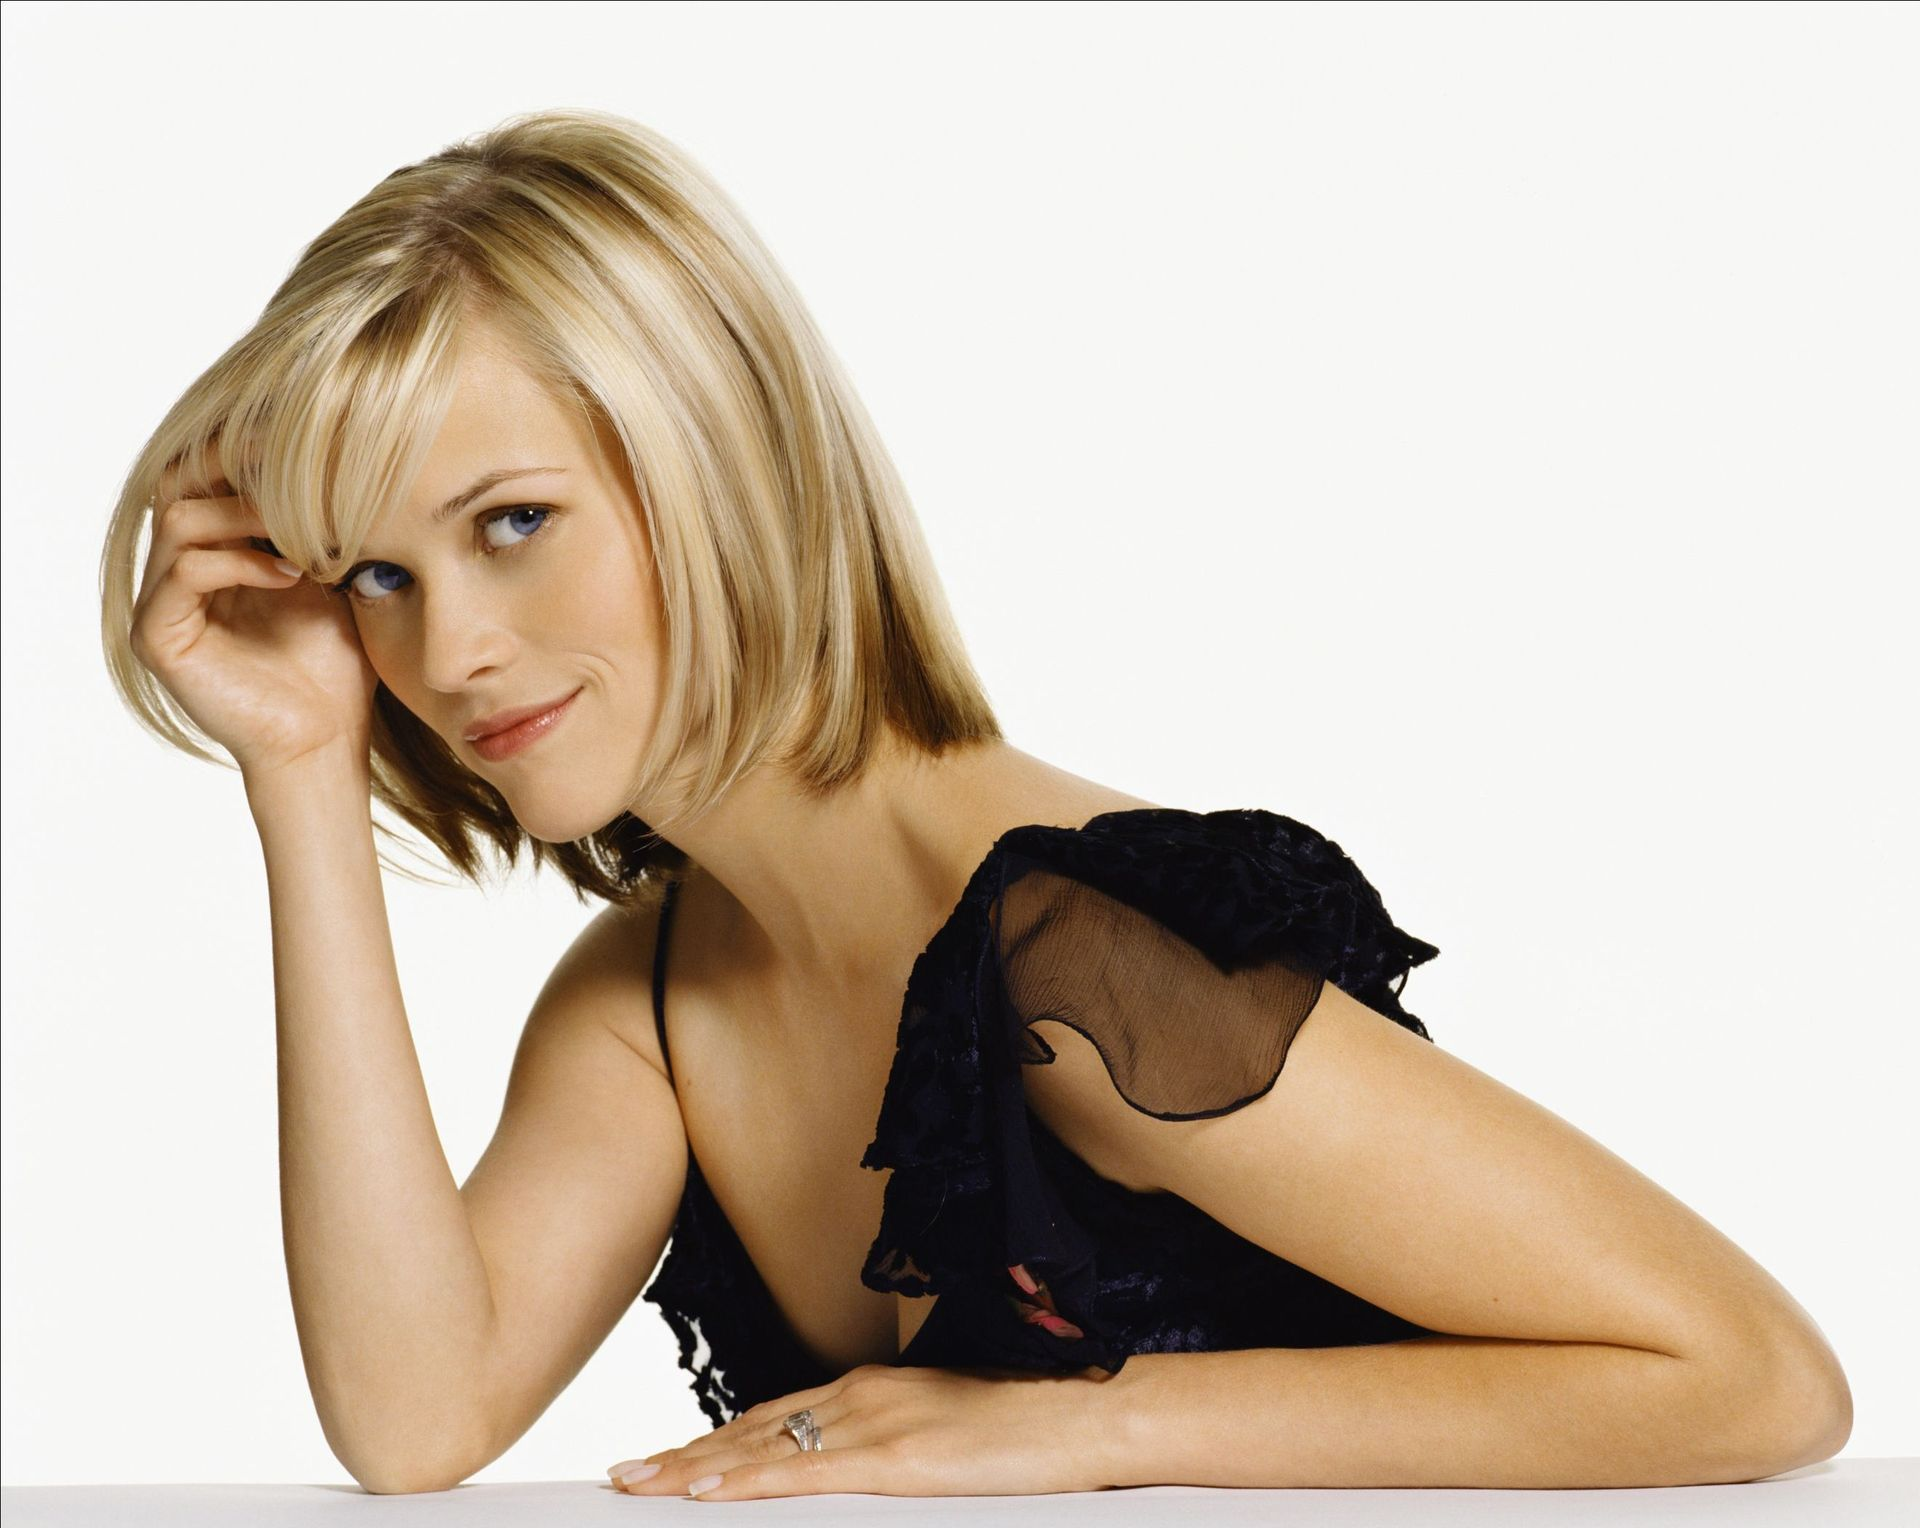 Reese Witherspoon - Reese Witherspoon Photo (79976) - Fanpop Reese Witherspoon